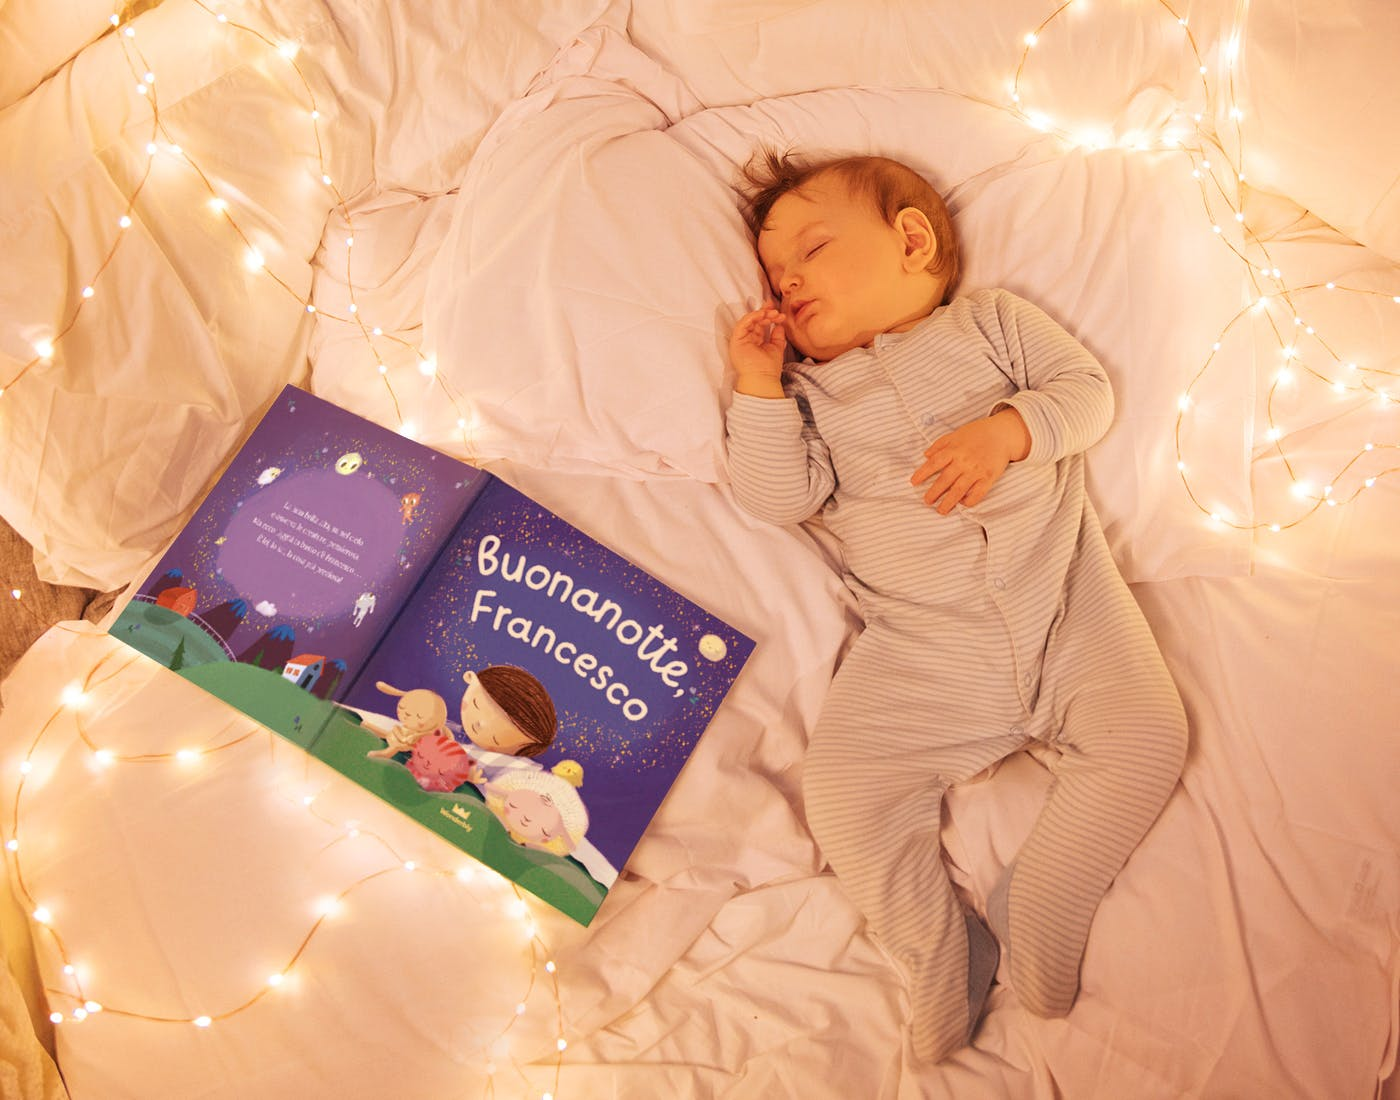 Baby asleep with Bedtime For You Book